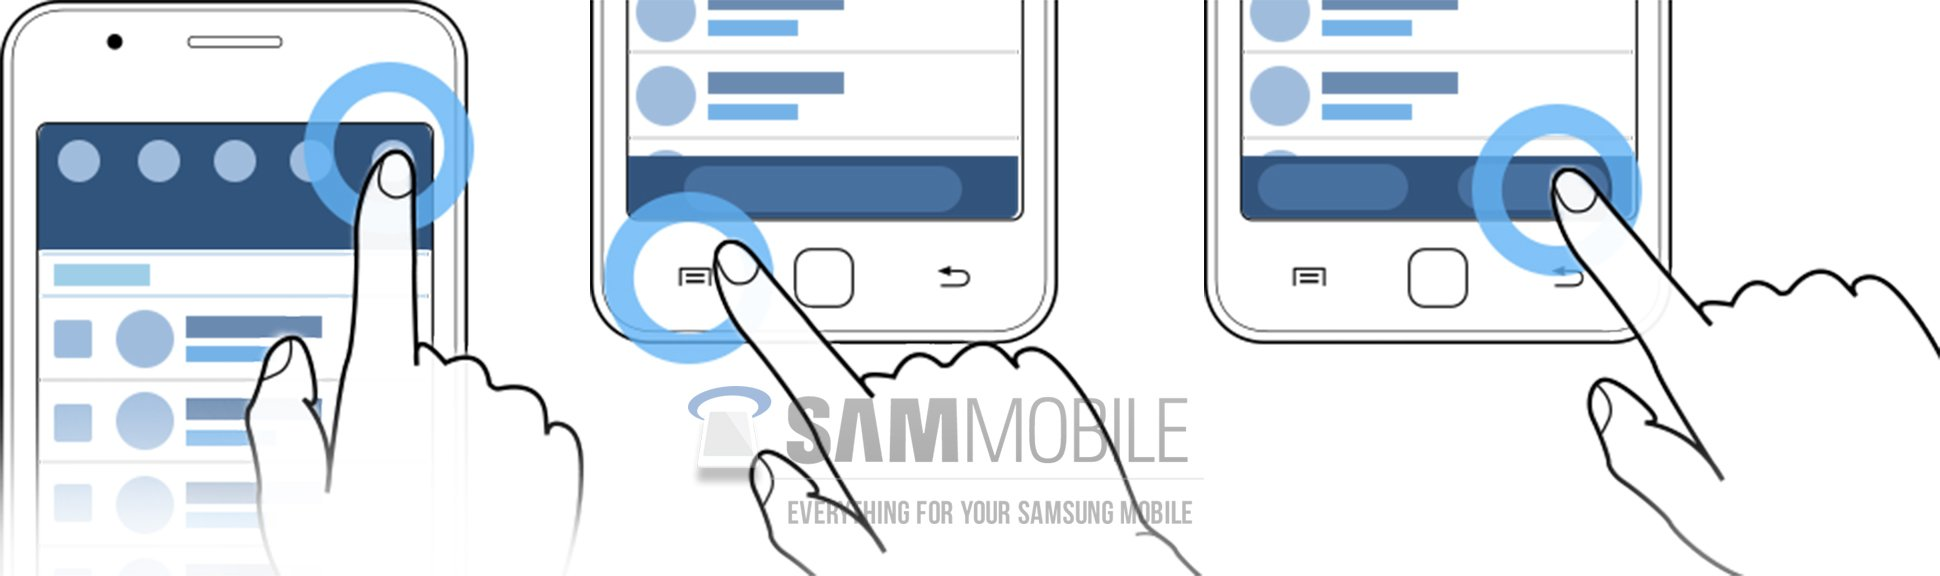 Exclusive: First look at Samsung's low-end Tizen interface ...